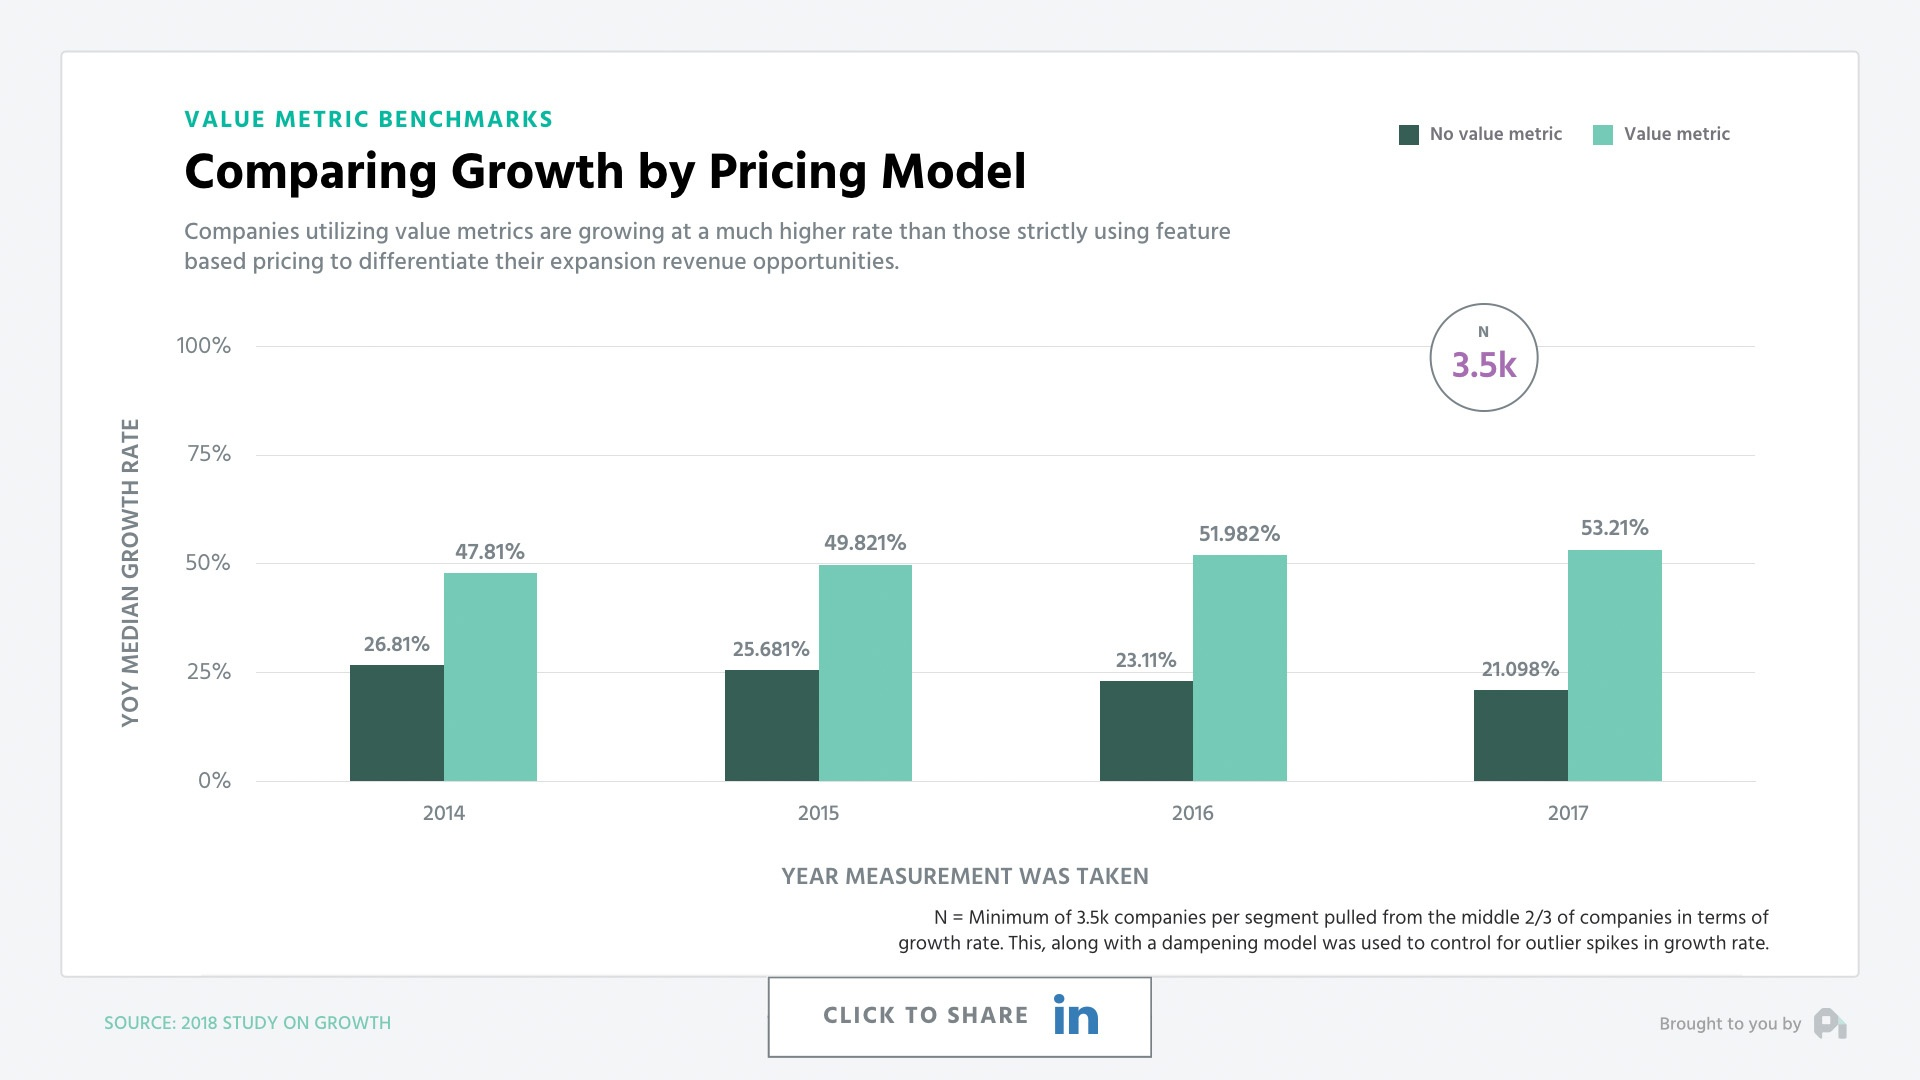 Comparing Growth by Pricing Model